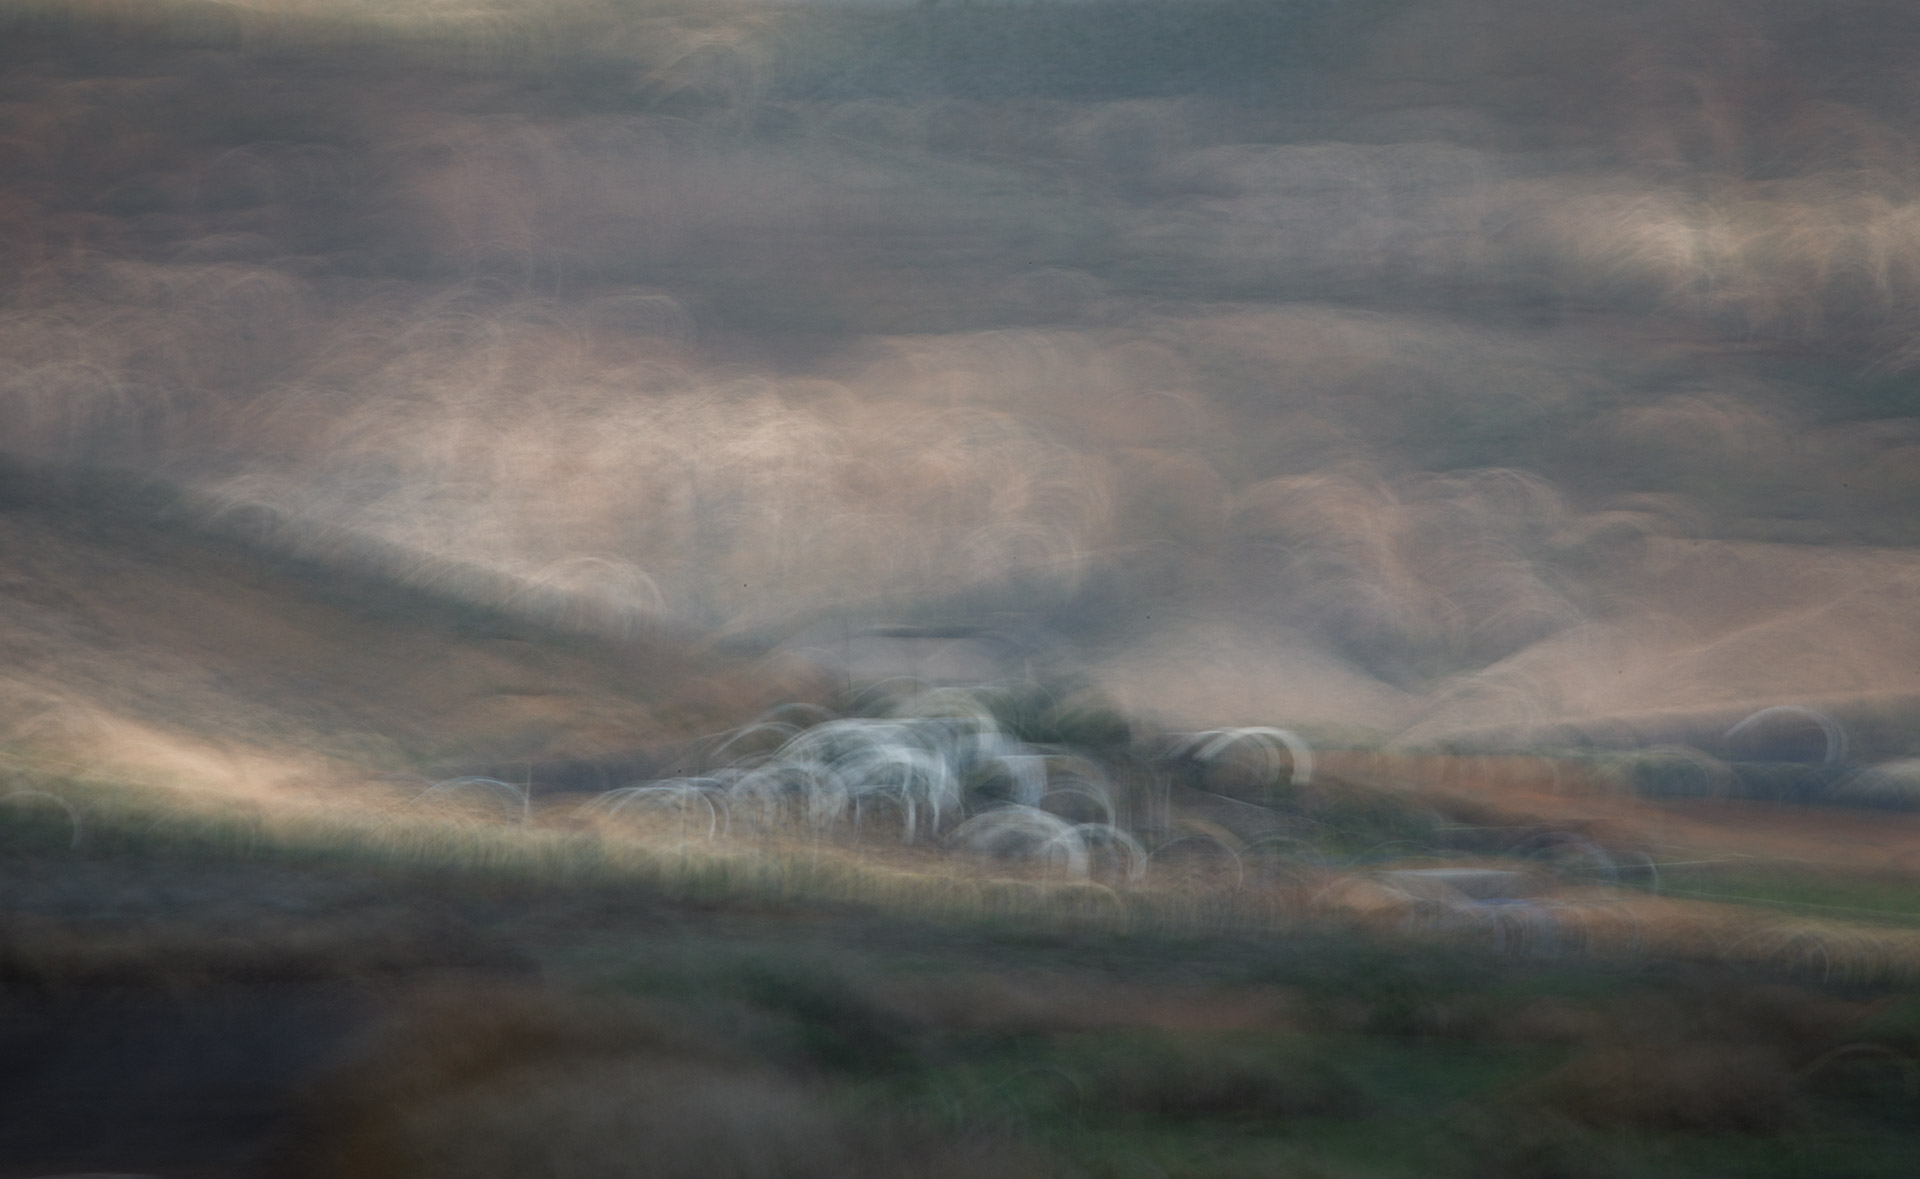 ICM image of Mala with volcanic backdrop